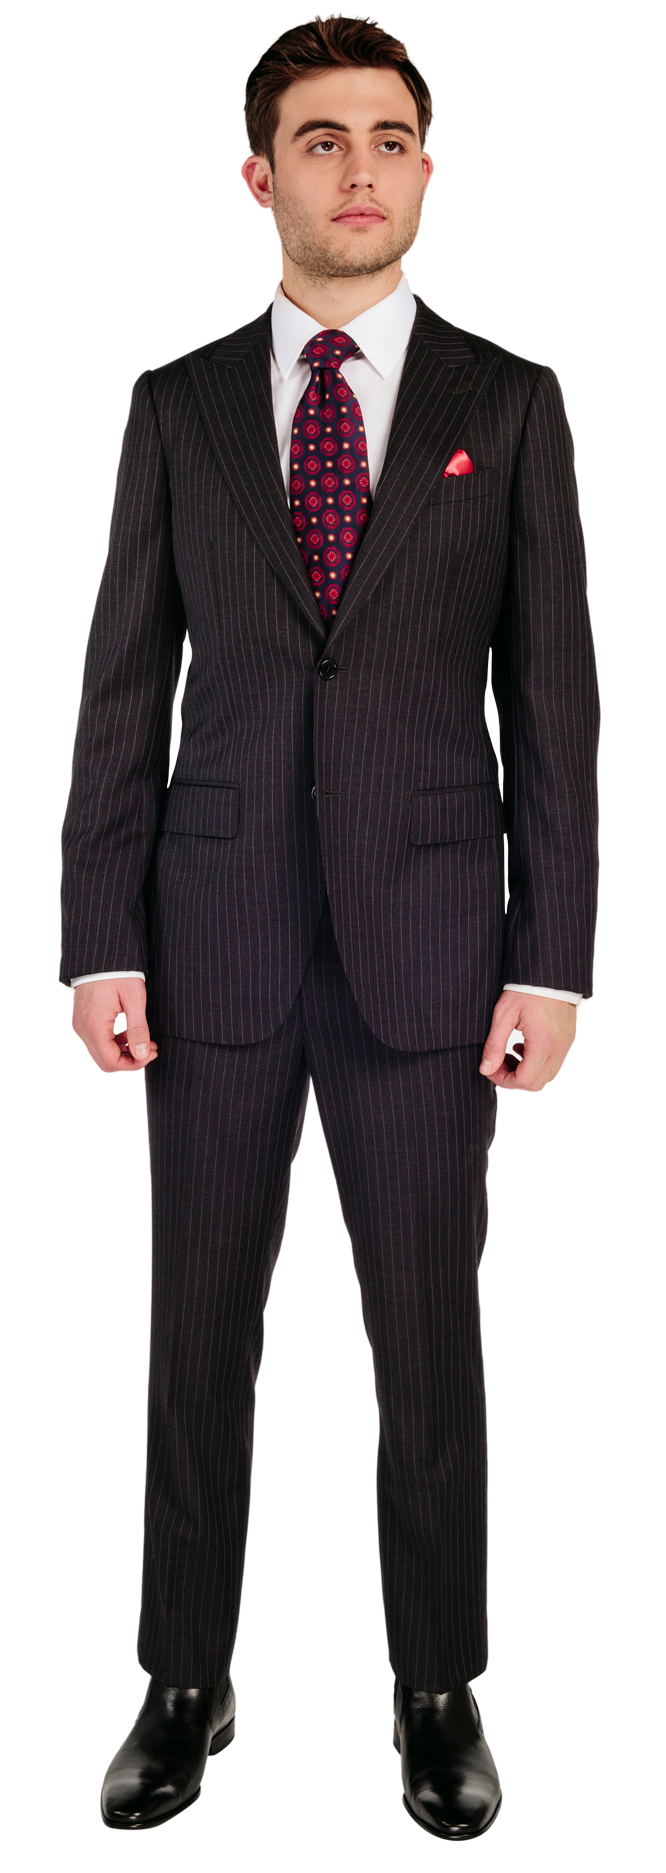 Guy In A Suit PNG - 159713